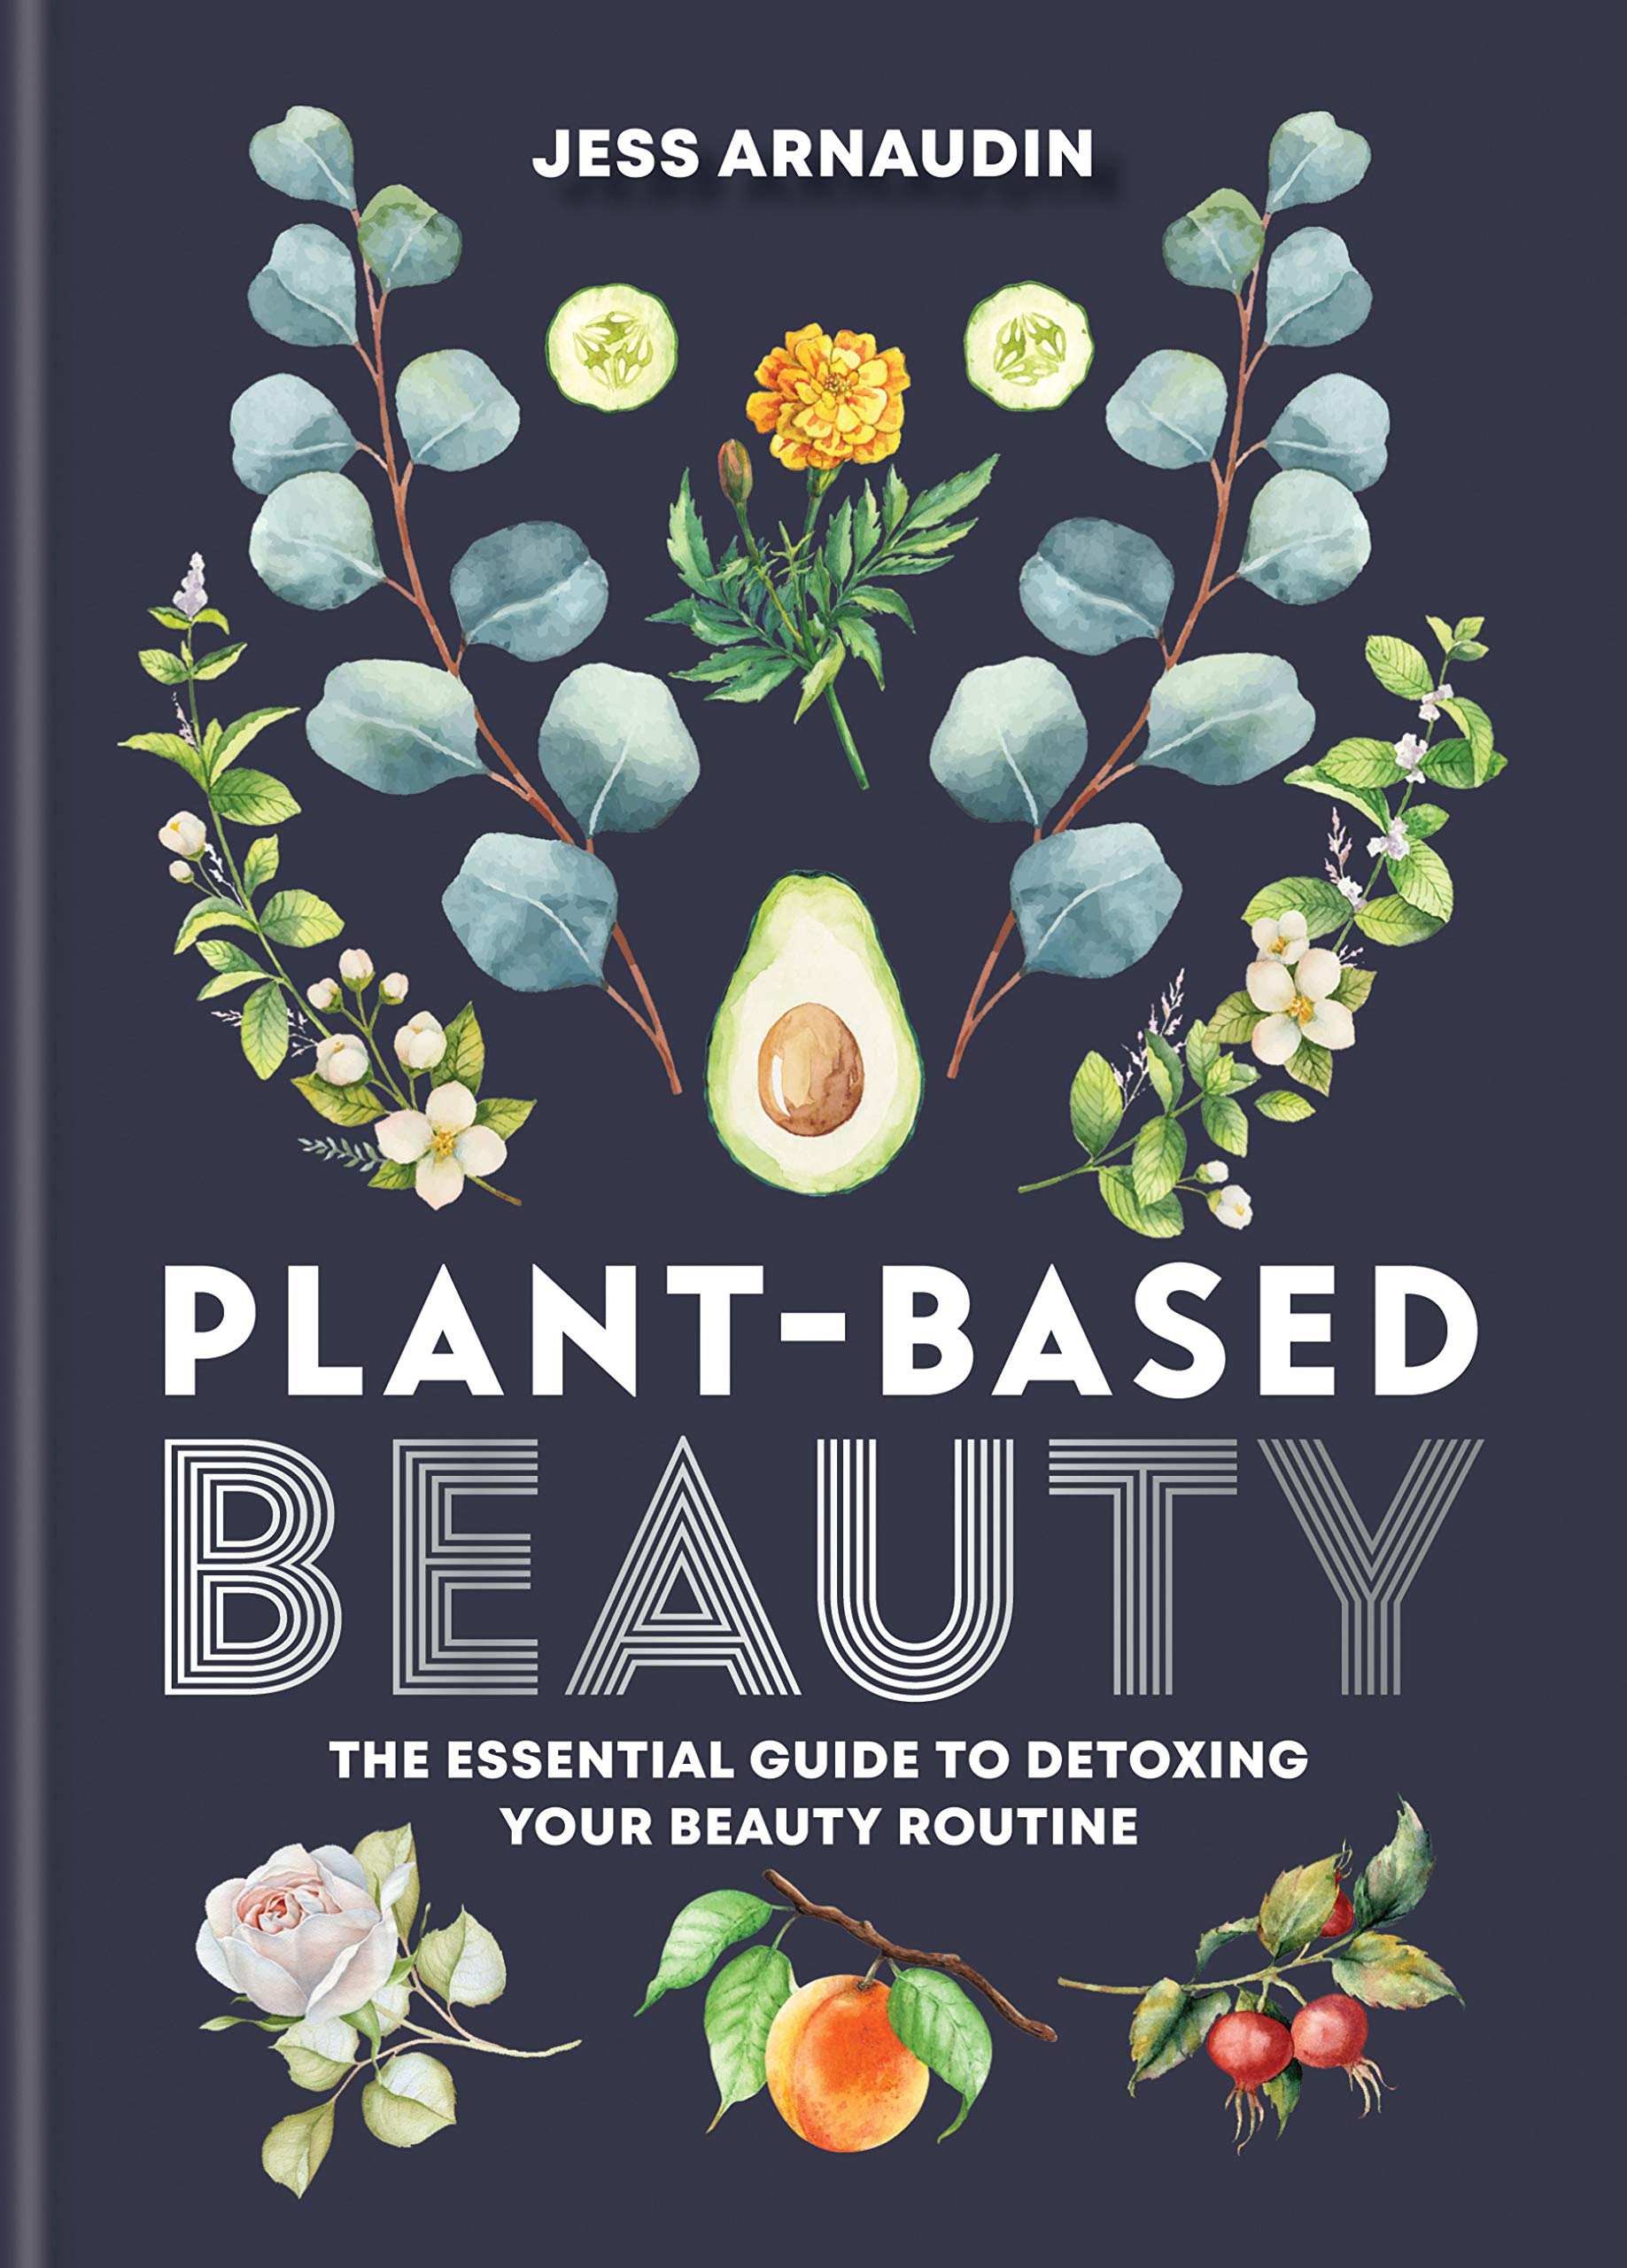 Image OfPlant-Based Beauty: The Essential Guide To Detoxing Your Beauty Routine (English Edition)